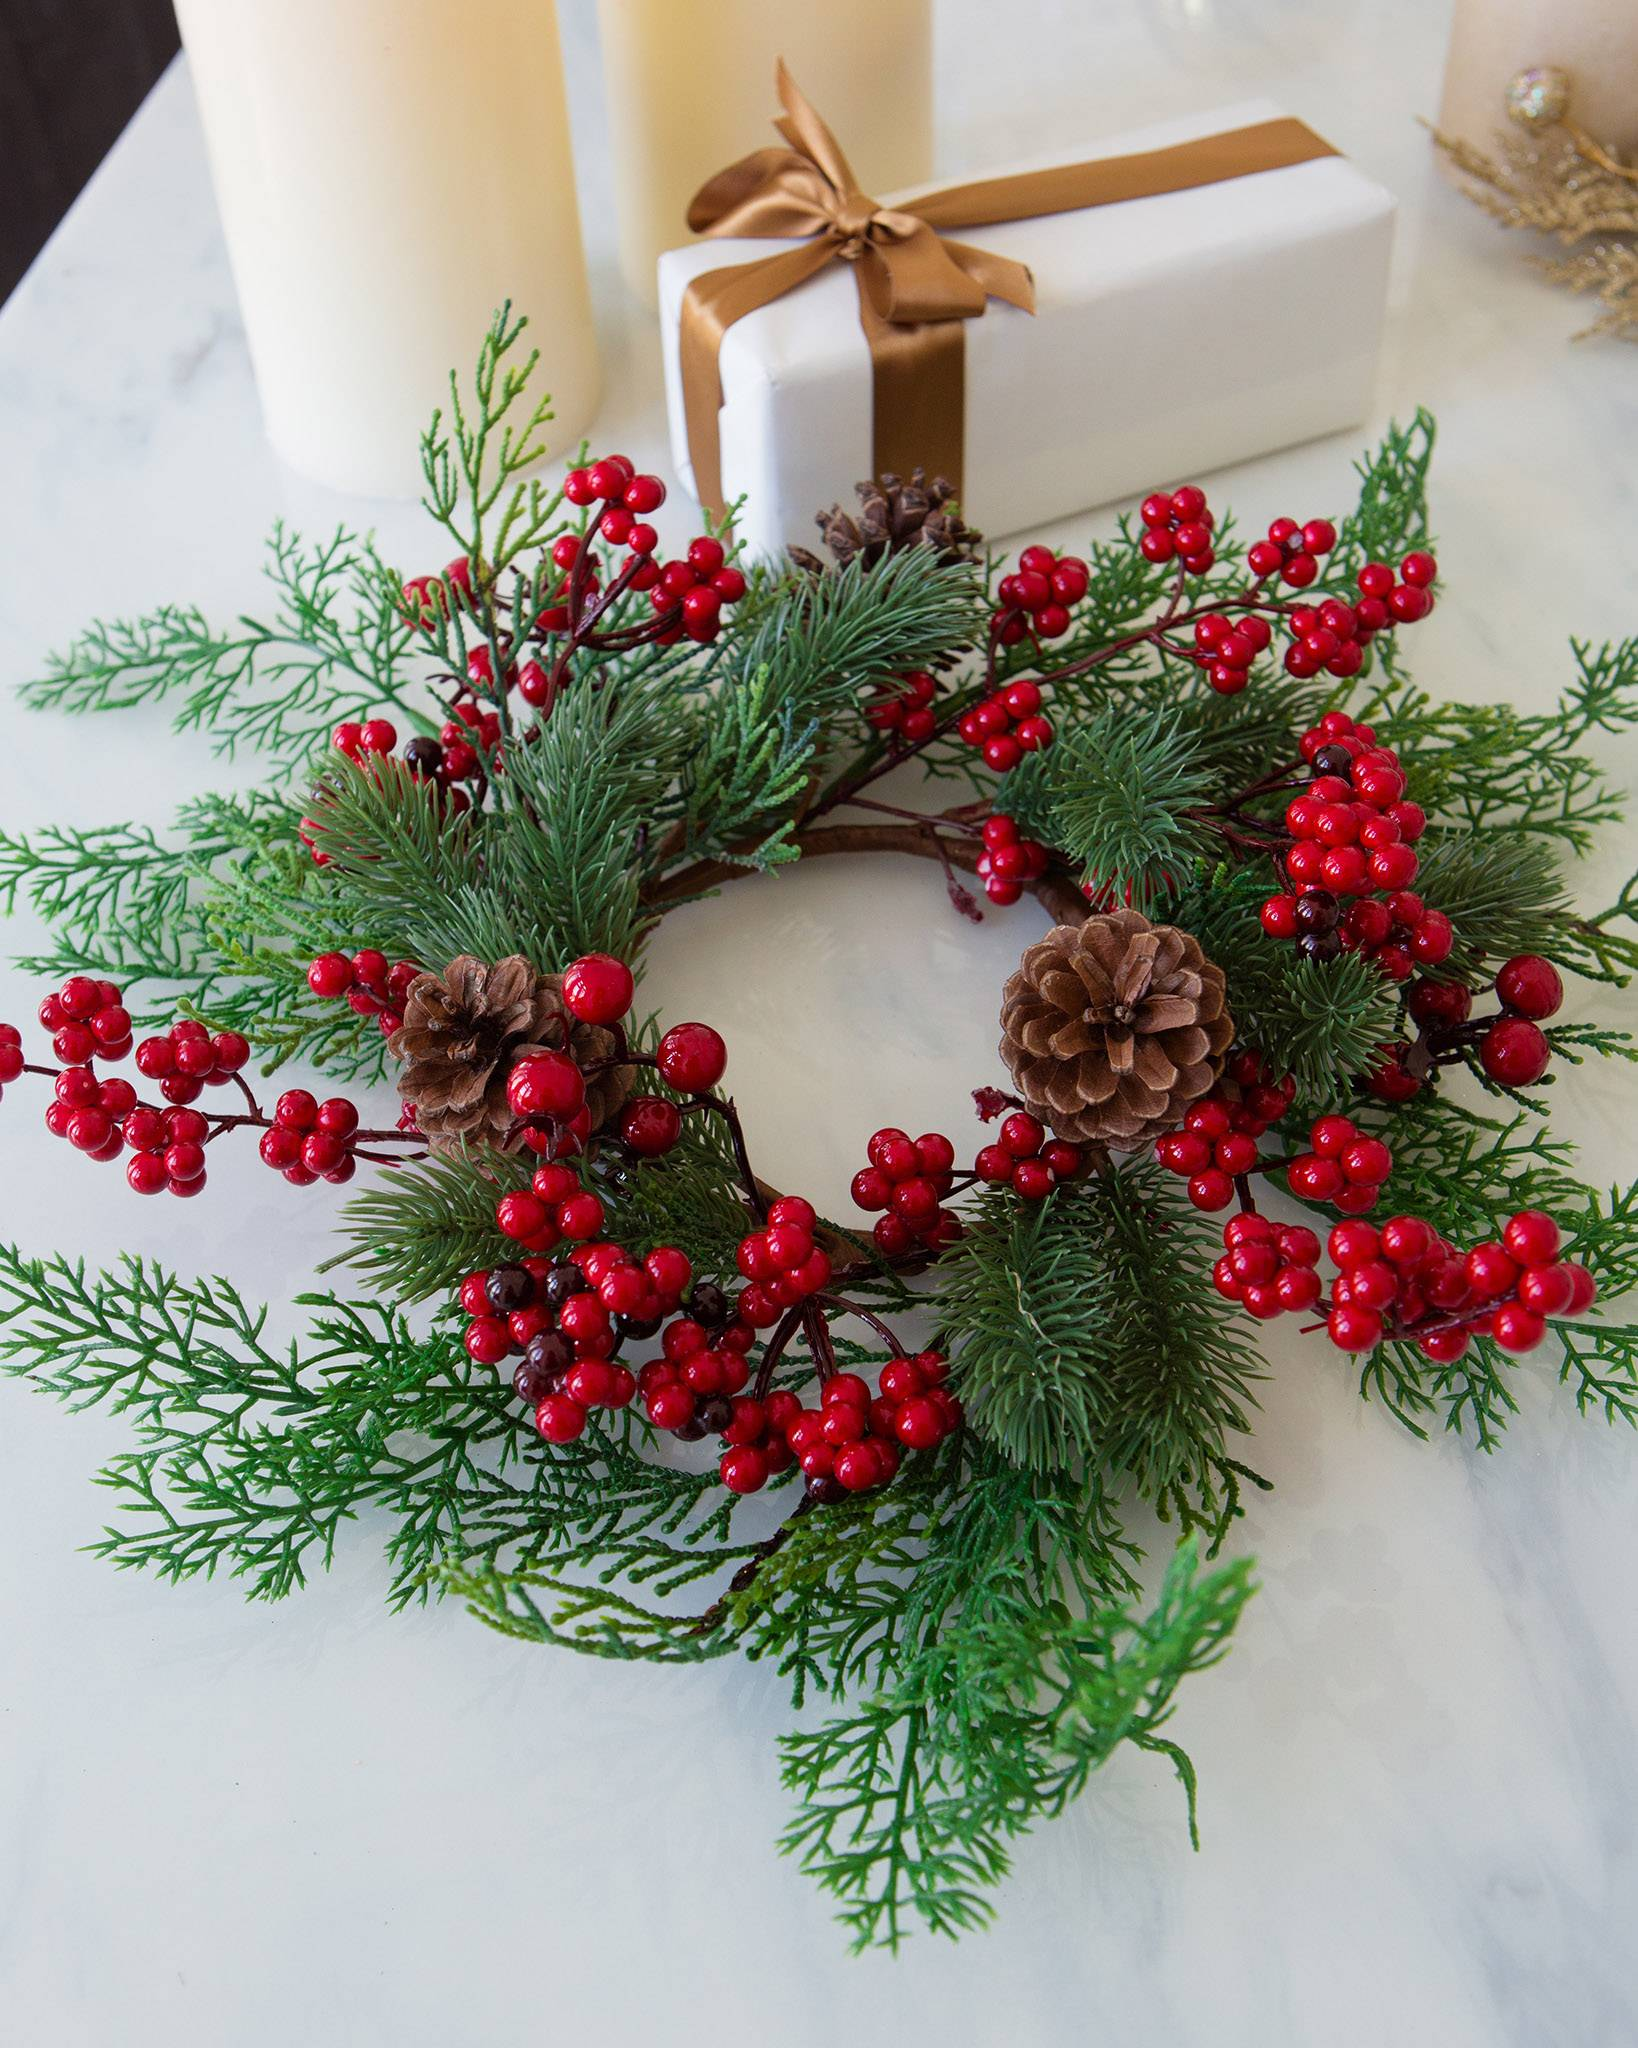 christmas candle rings set of 3 by balsam hill - Decorative Christmas Candle Rings